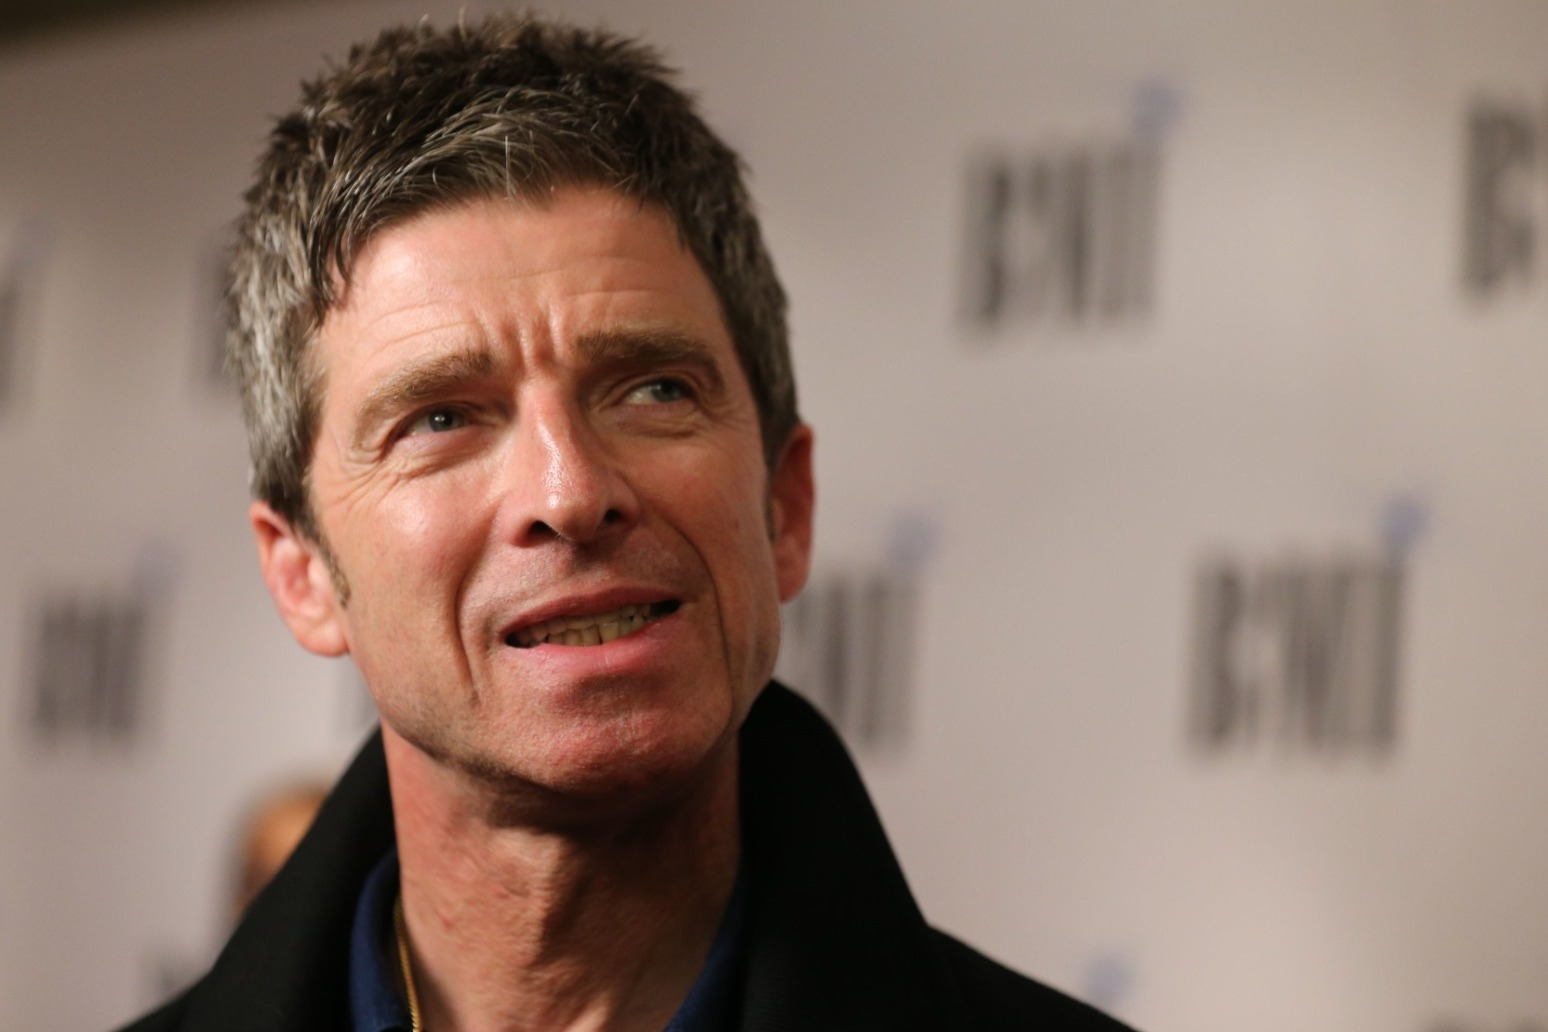 NOEL GALLAGHER REVEALS \'NAIL IN COFFIN\' FOR OASIS REUNION HOPES